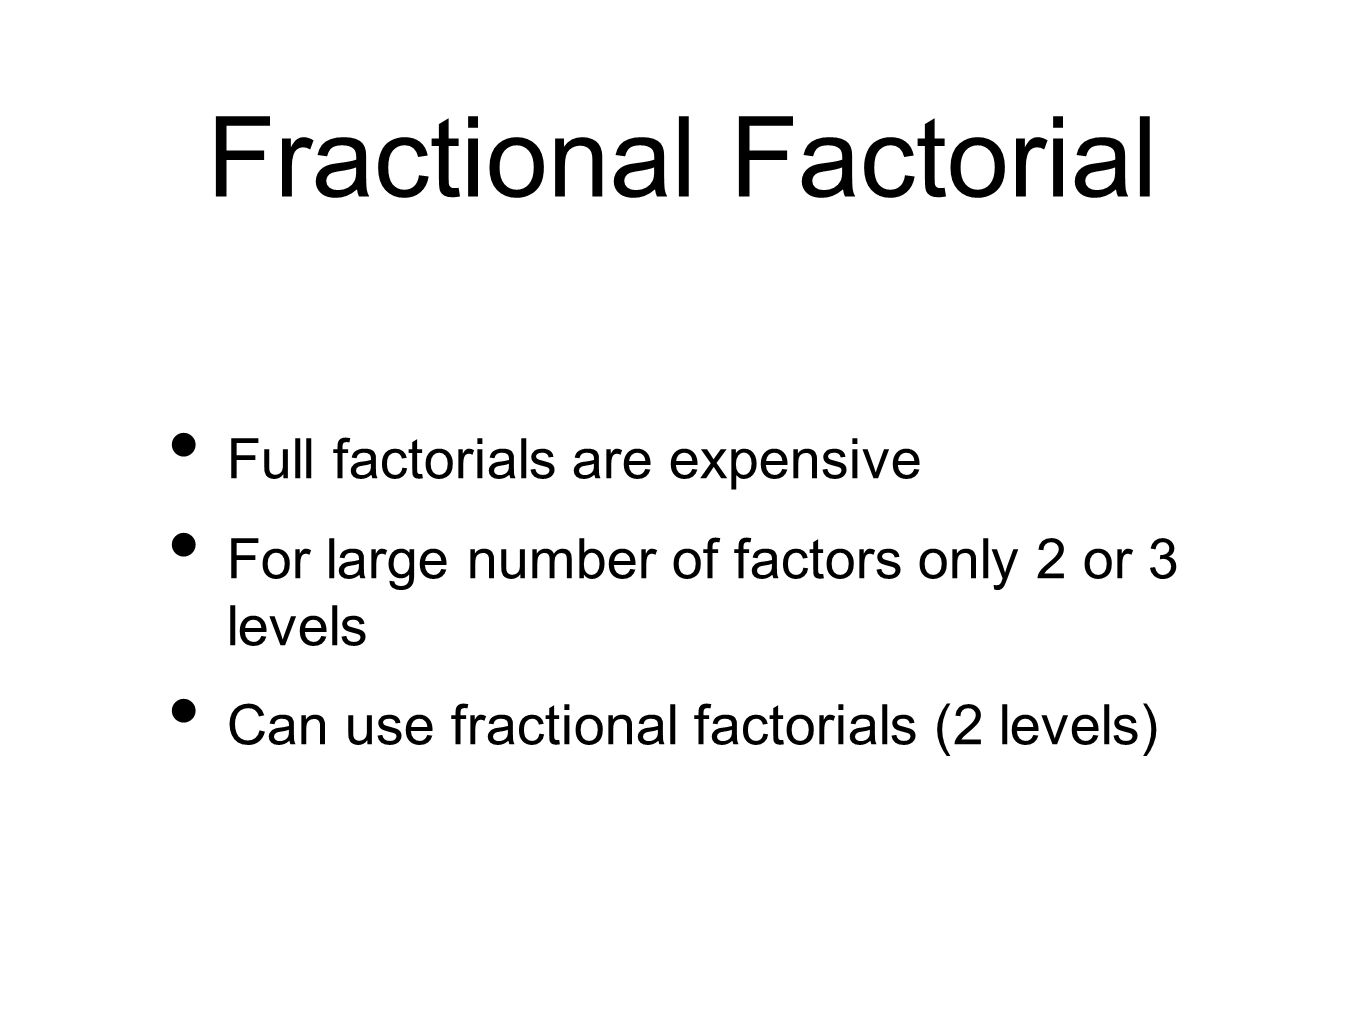 Fractional Factorial Full factorials are expensive